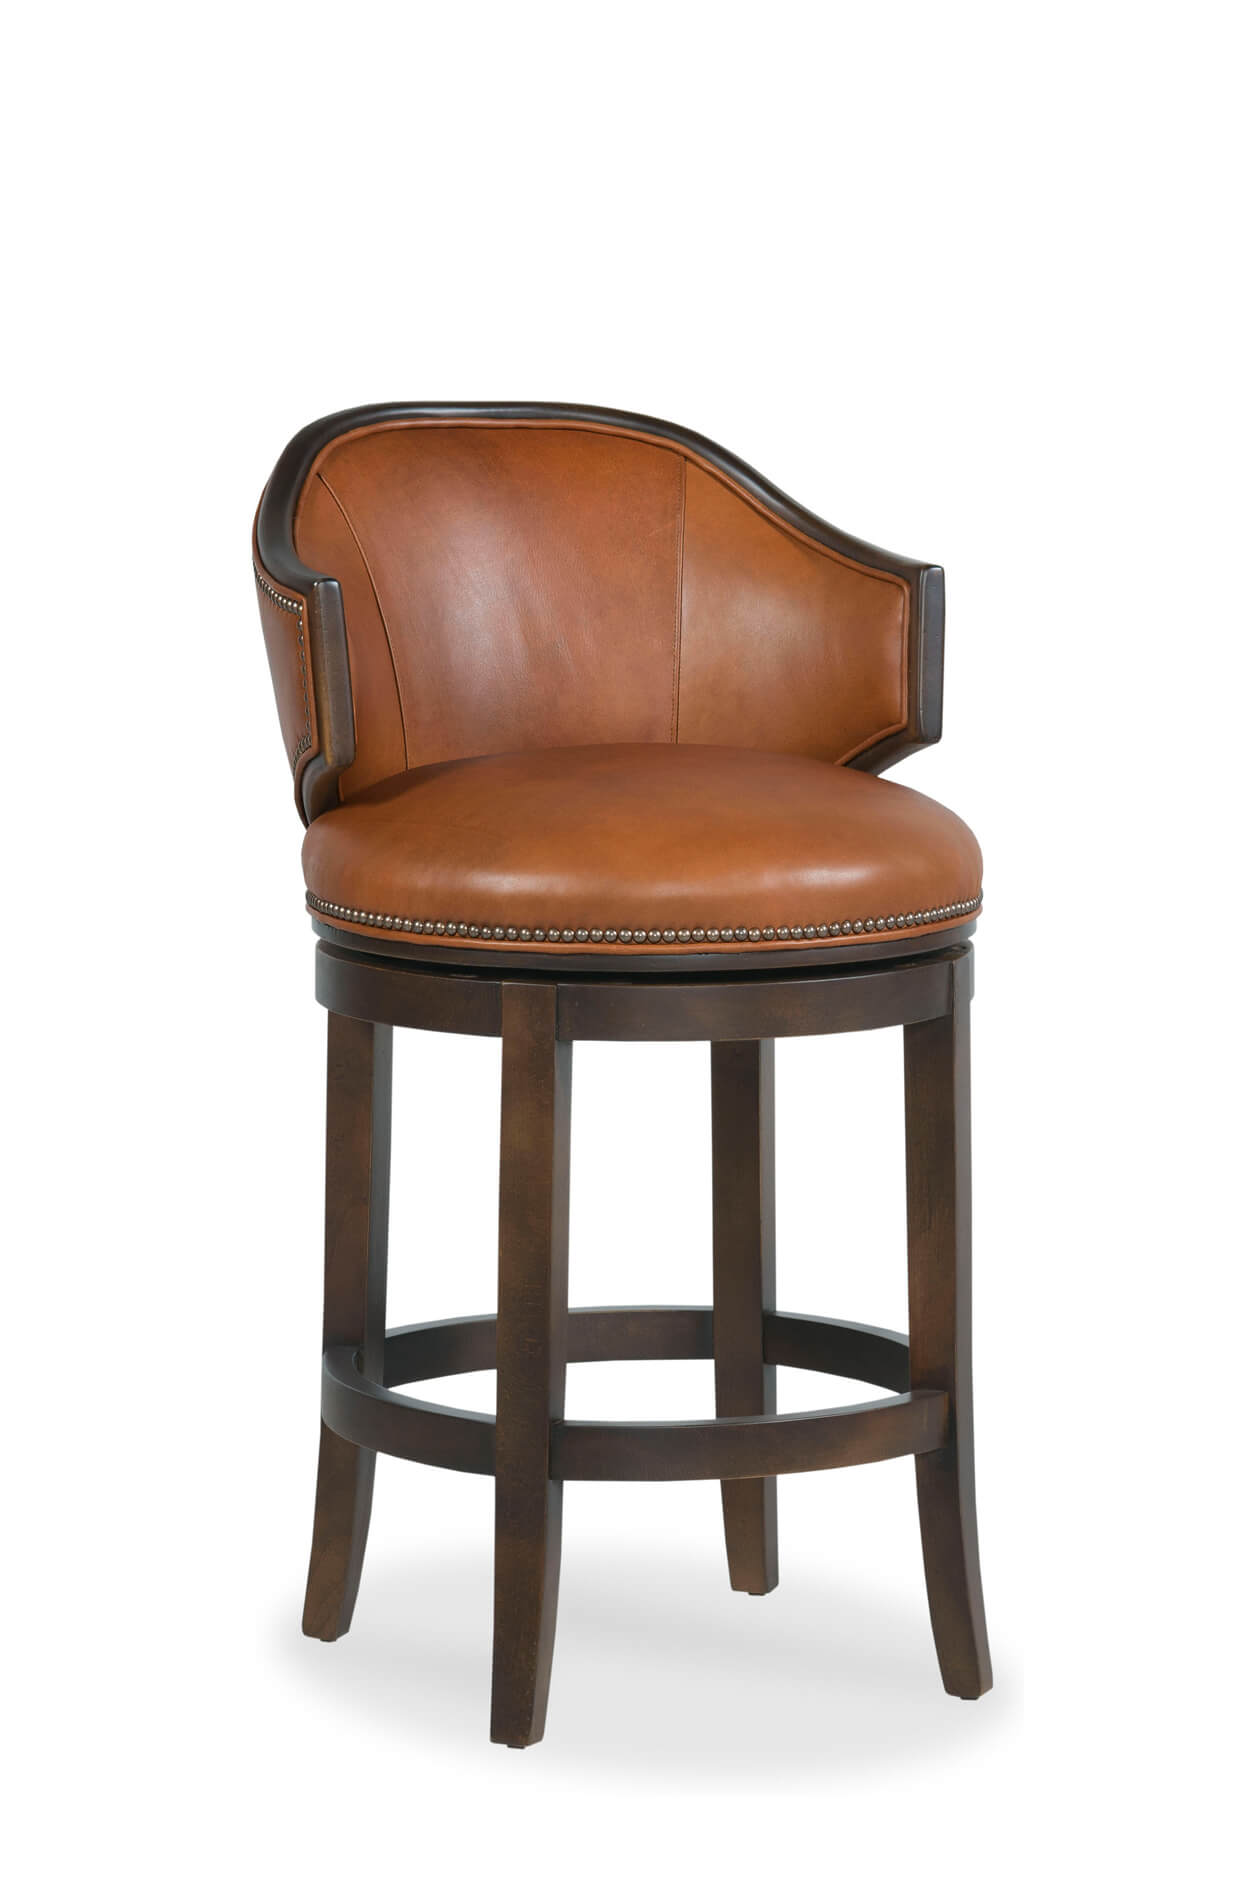 Terrific Gimlet Wooden Upholstered Swivel Stool With Arms Short Links Chair Design For Home Short Linksinfo